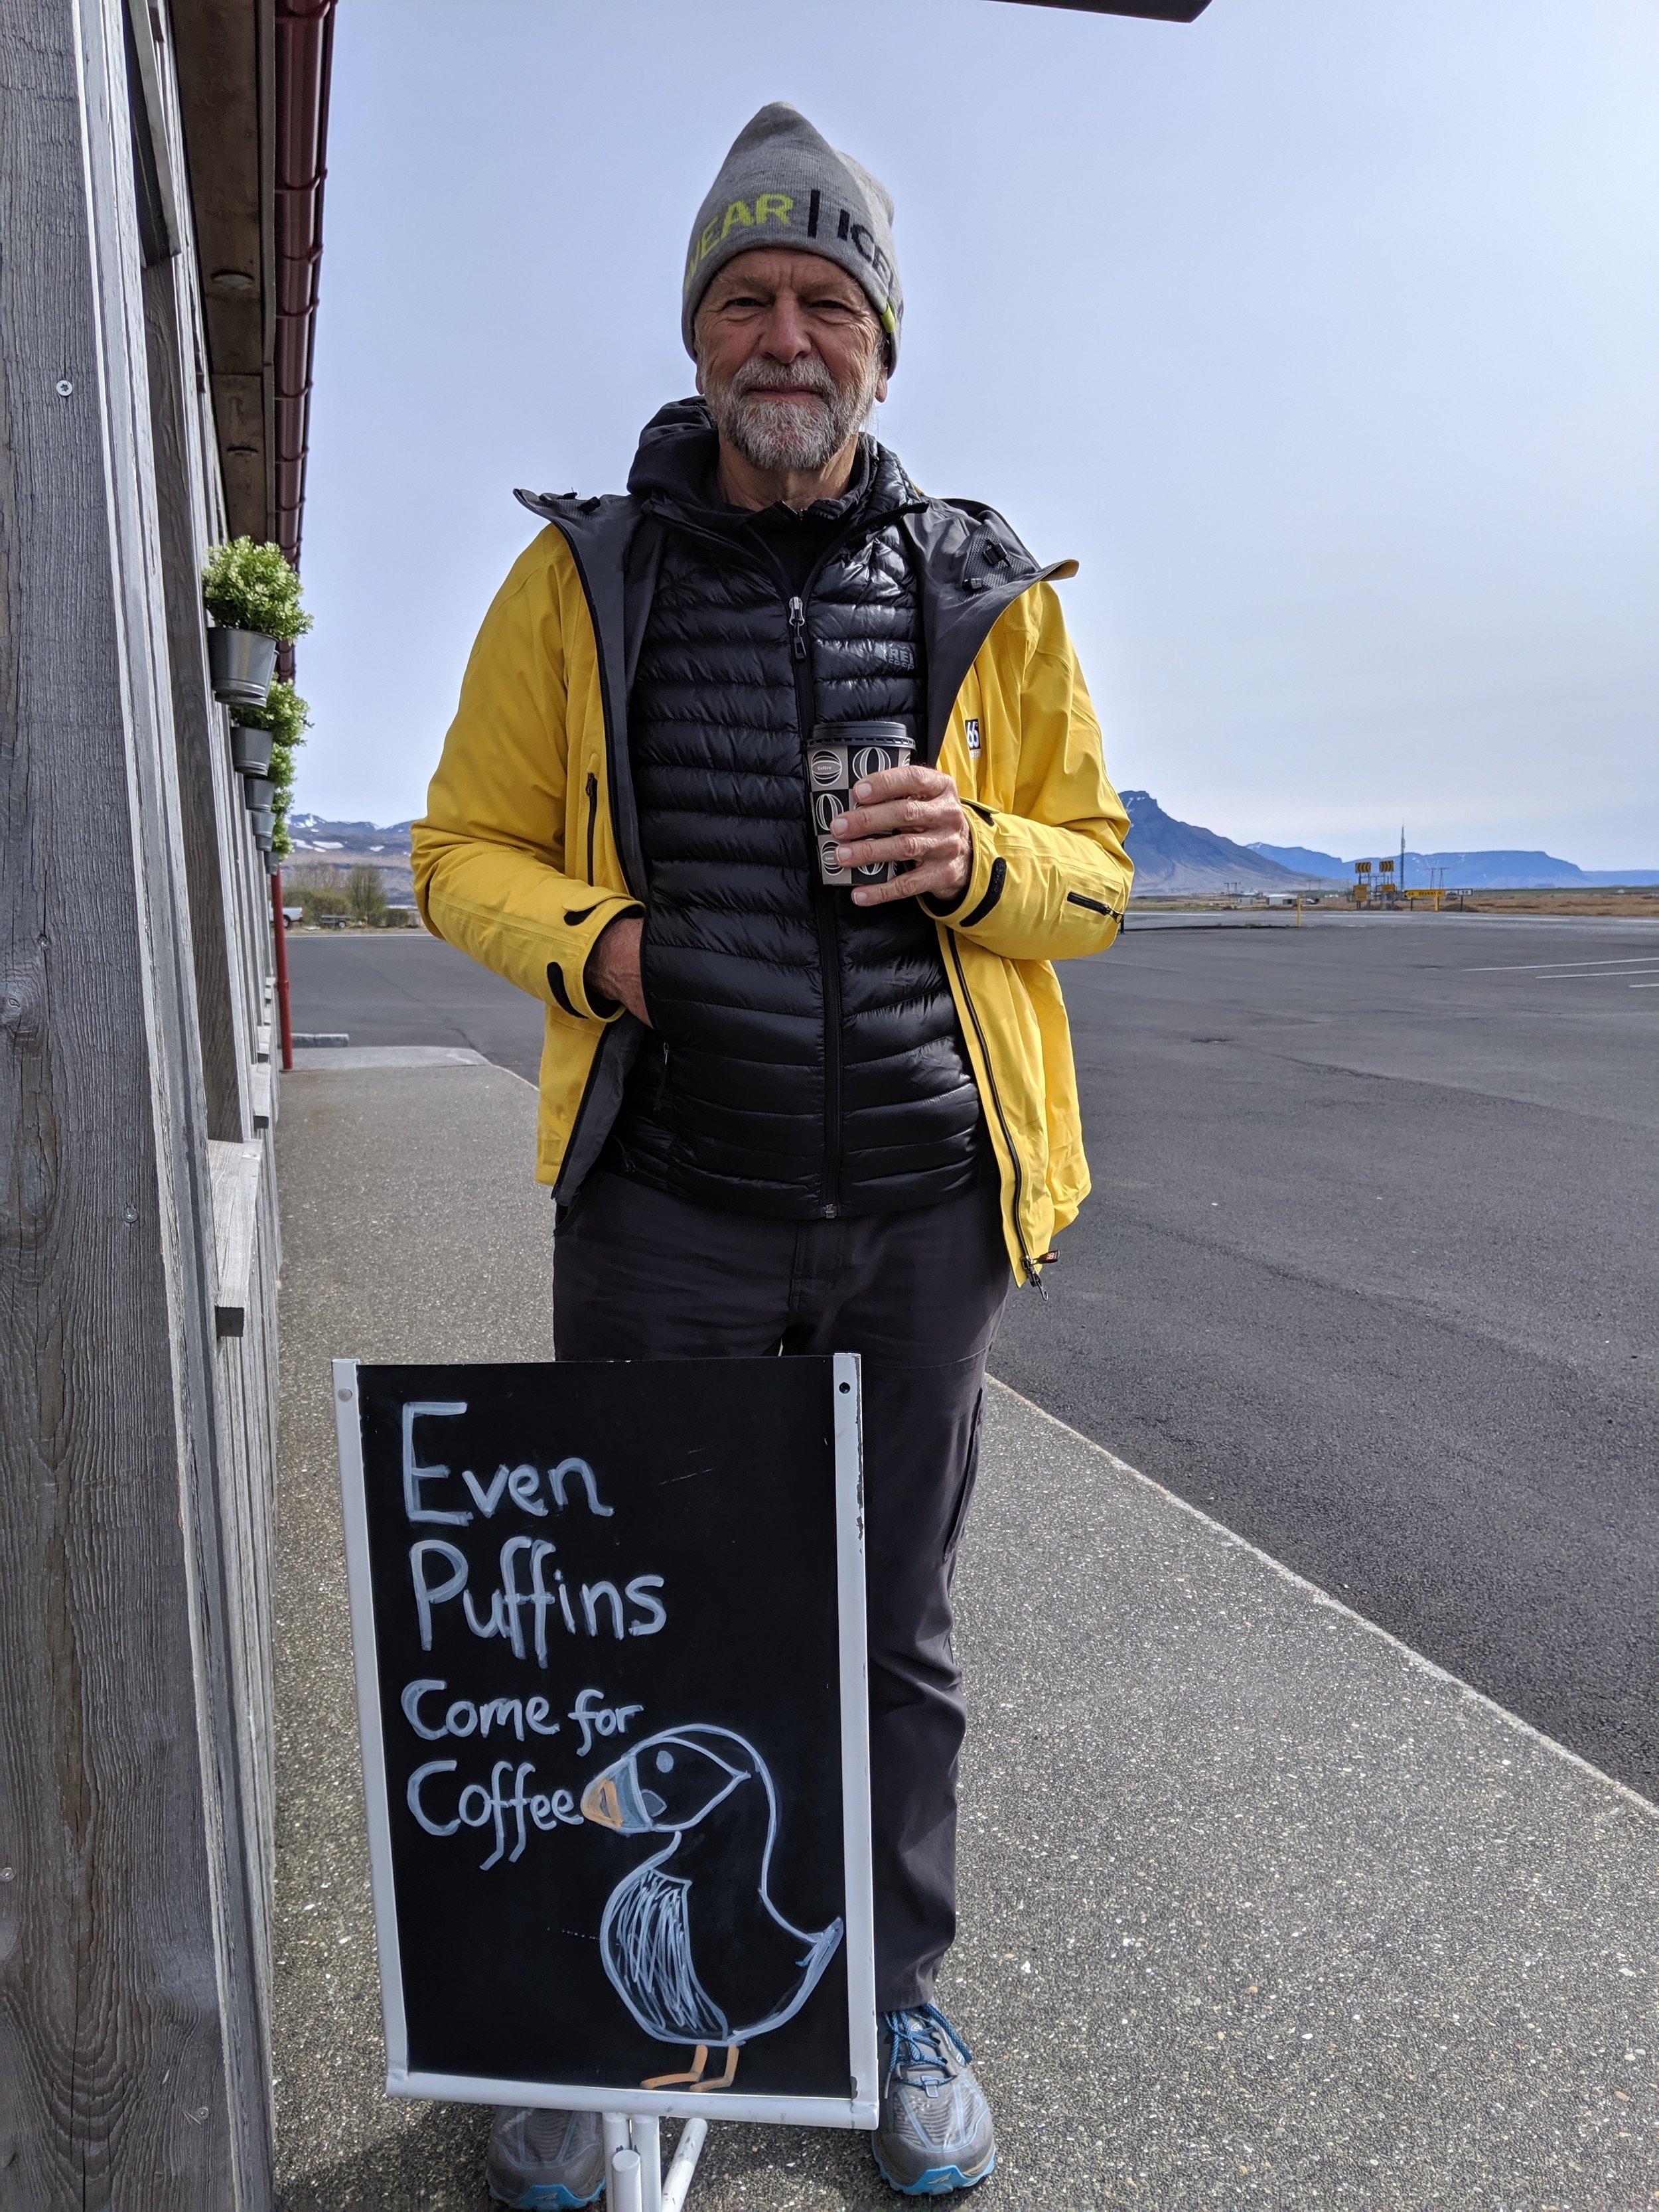 In our quest to find puffins we stopped at every location where there had been reported sightings. This one proved to be a bust, but the coffee was good.